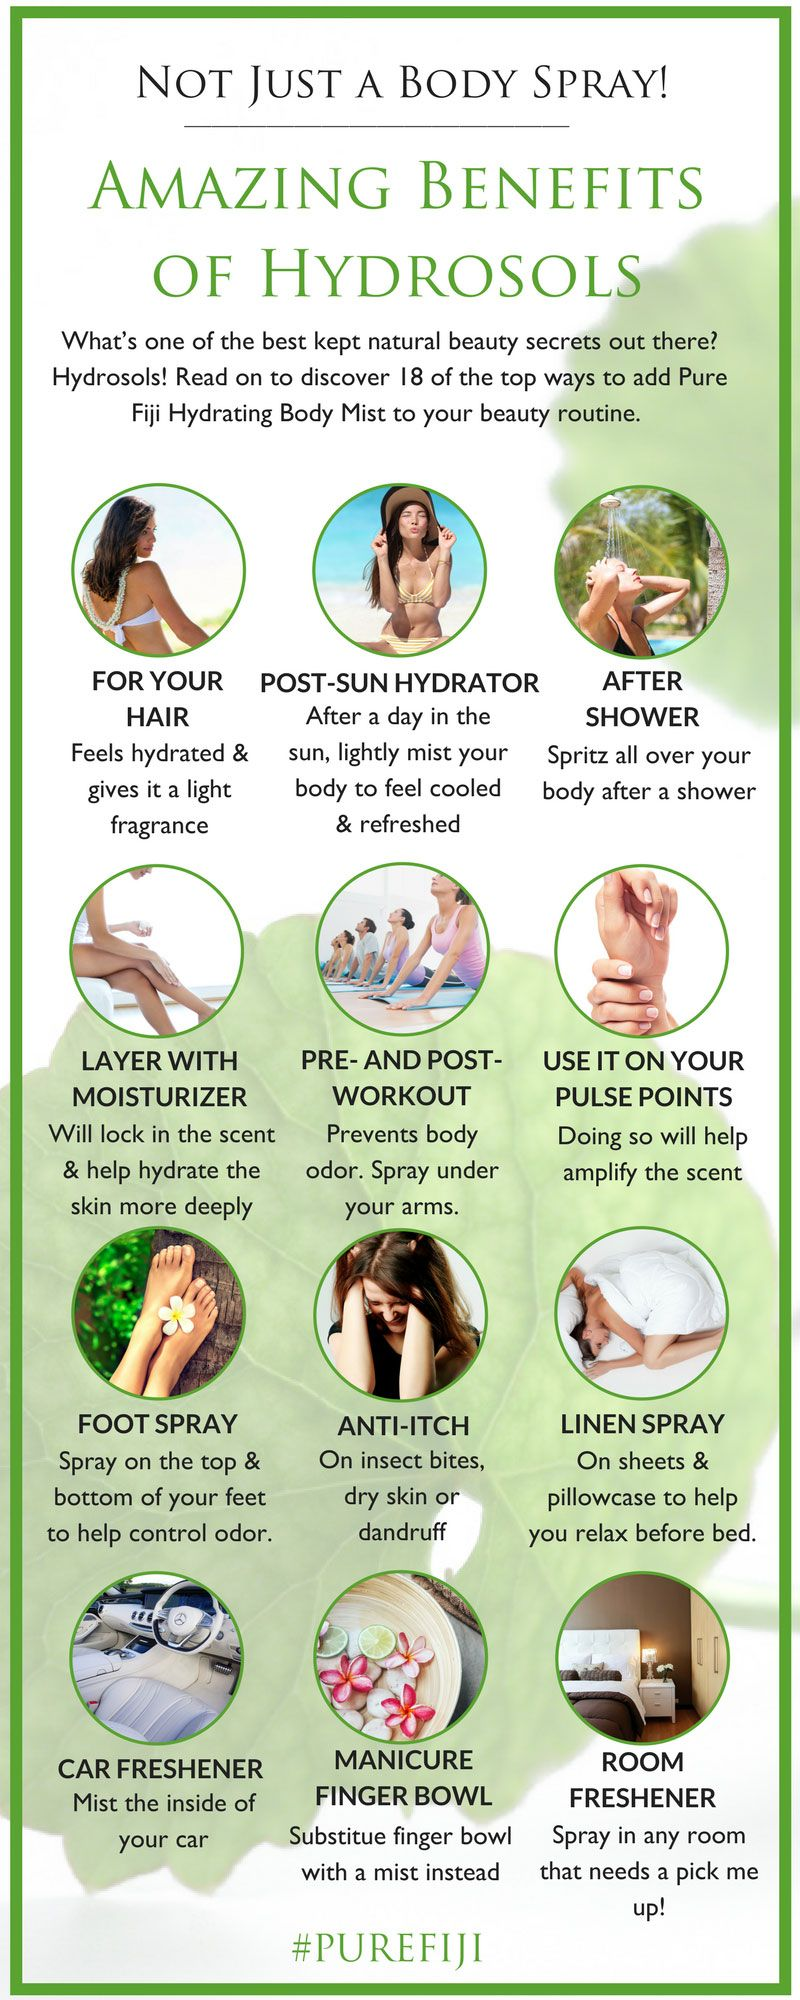 Not Just a Body Spray: 9 Amazing Health & Beauty Benefits of